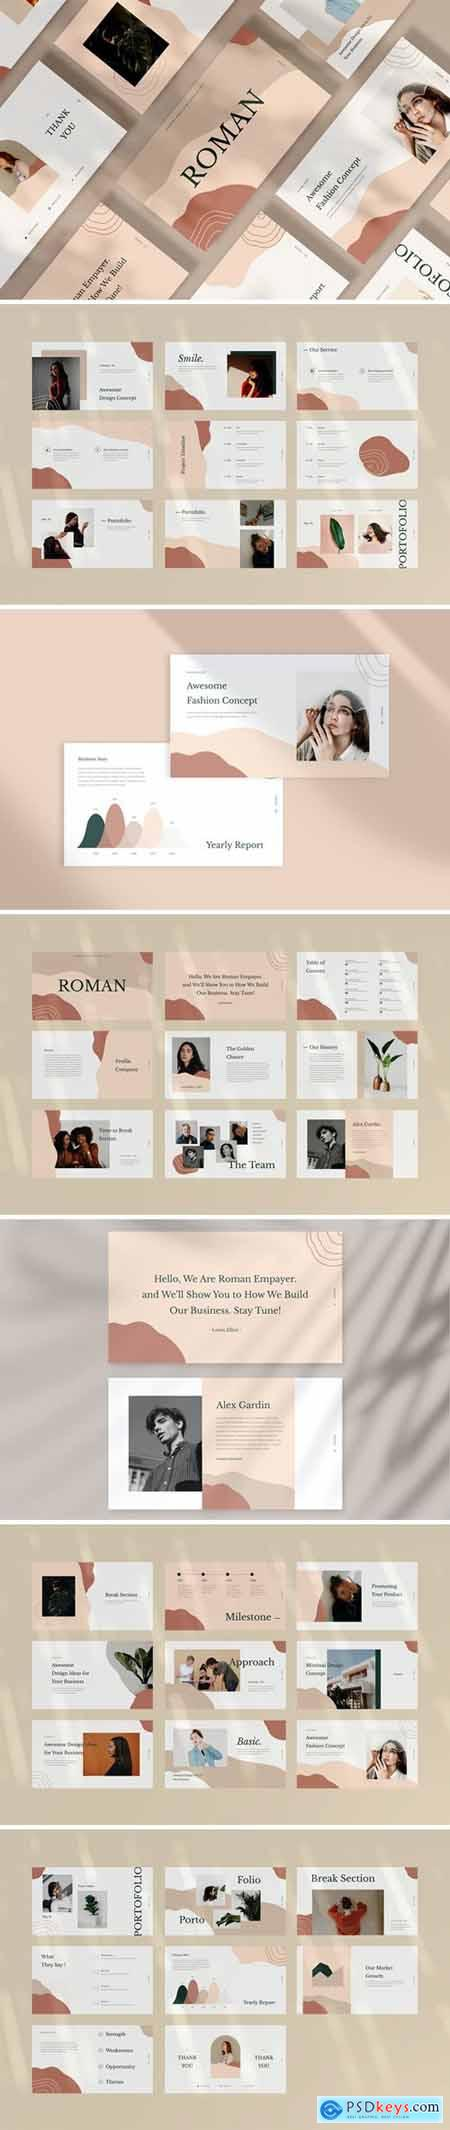 Roman Powerpoint, Keynote and Google Slides Templates